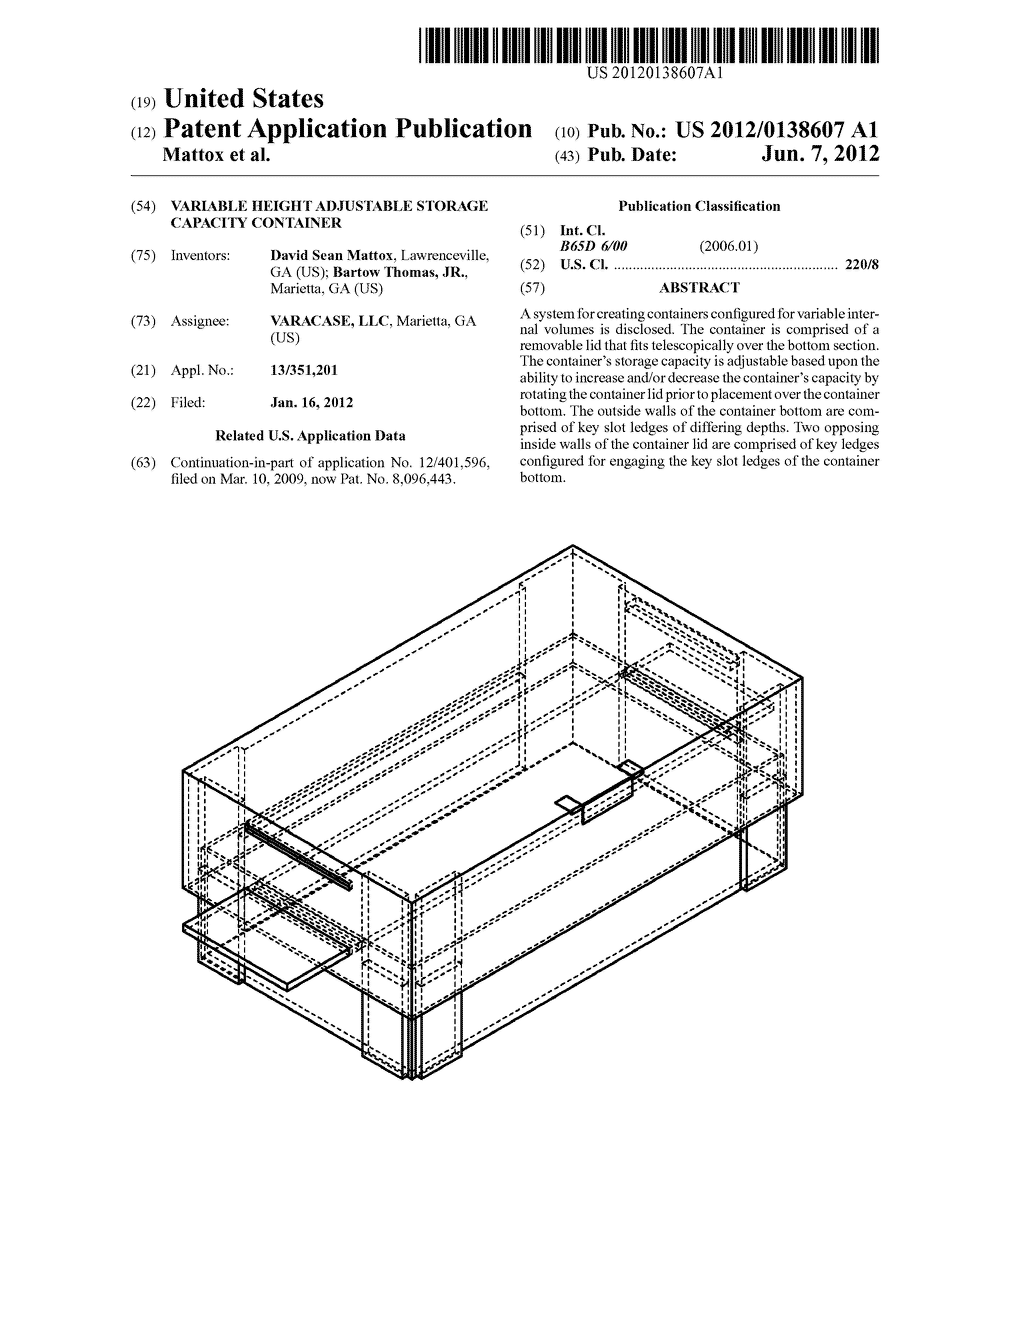 VARIABLE HEIGHT ADJUSTABLE STORAGE CAPACITY CONTAINER - diagram, schematic, and image 01